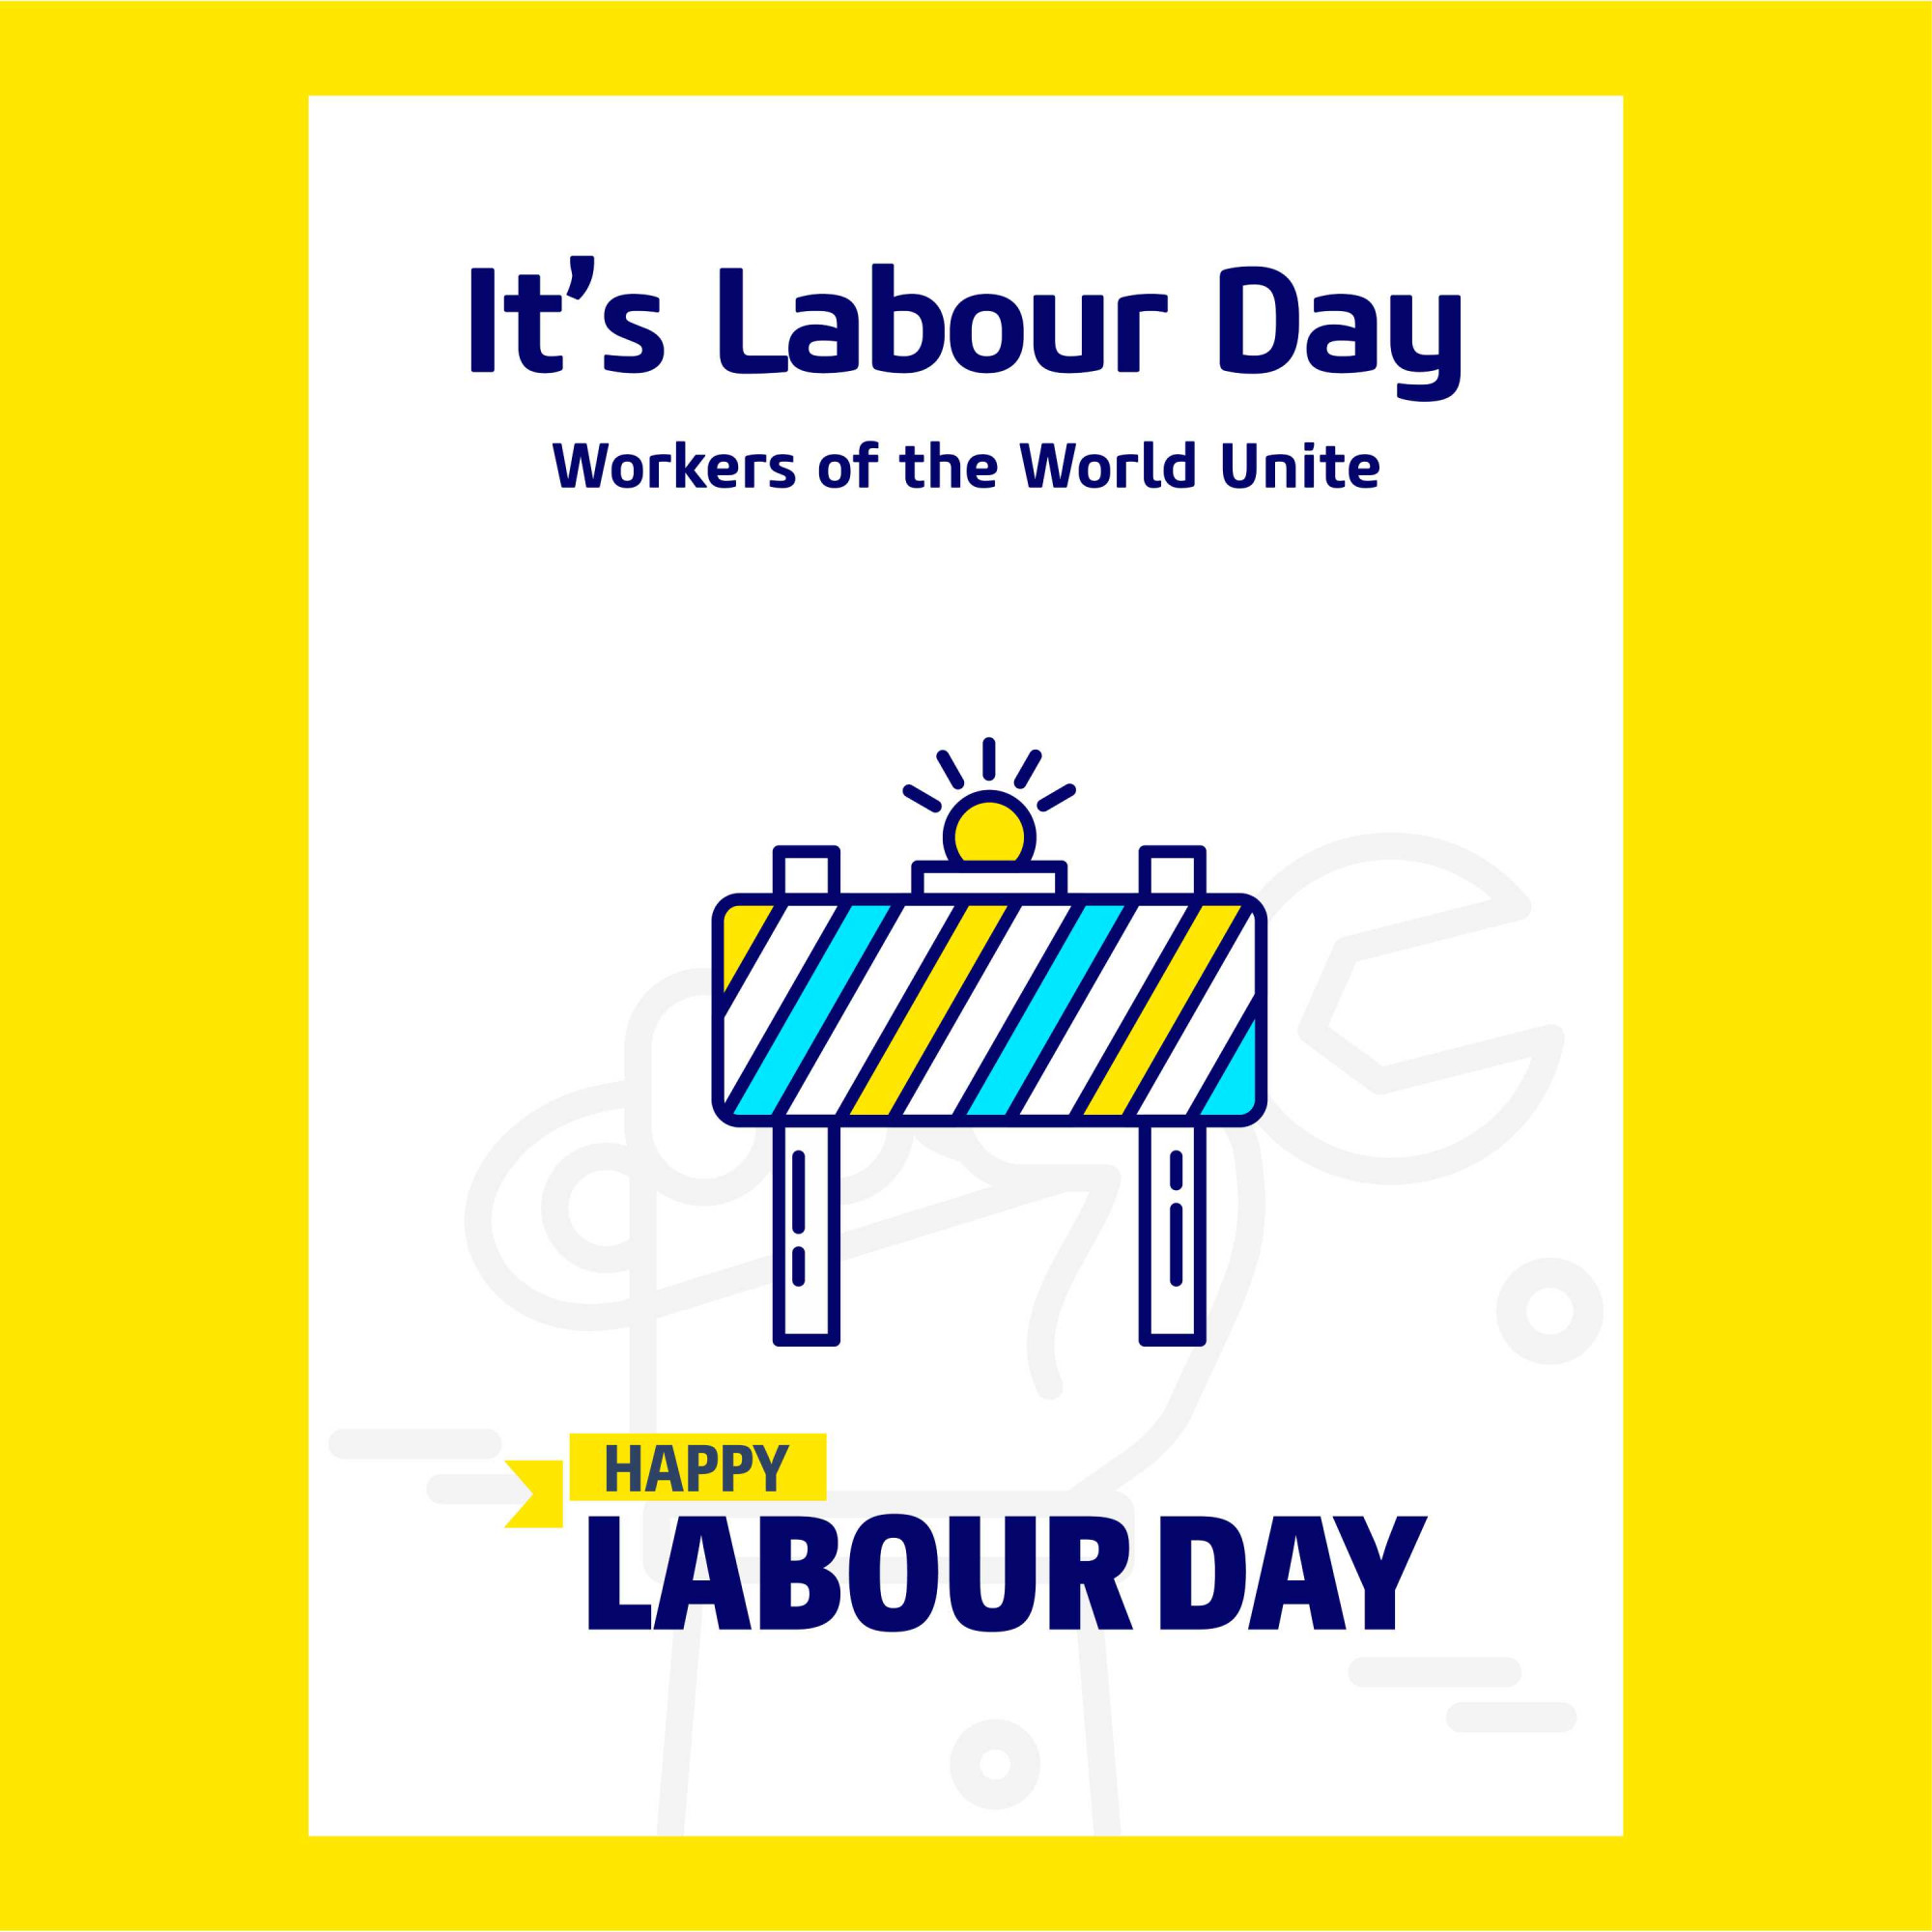 Its Labour Day Poster design